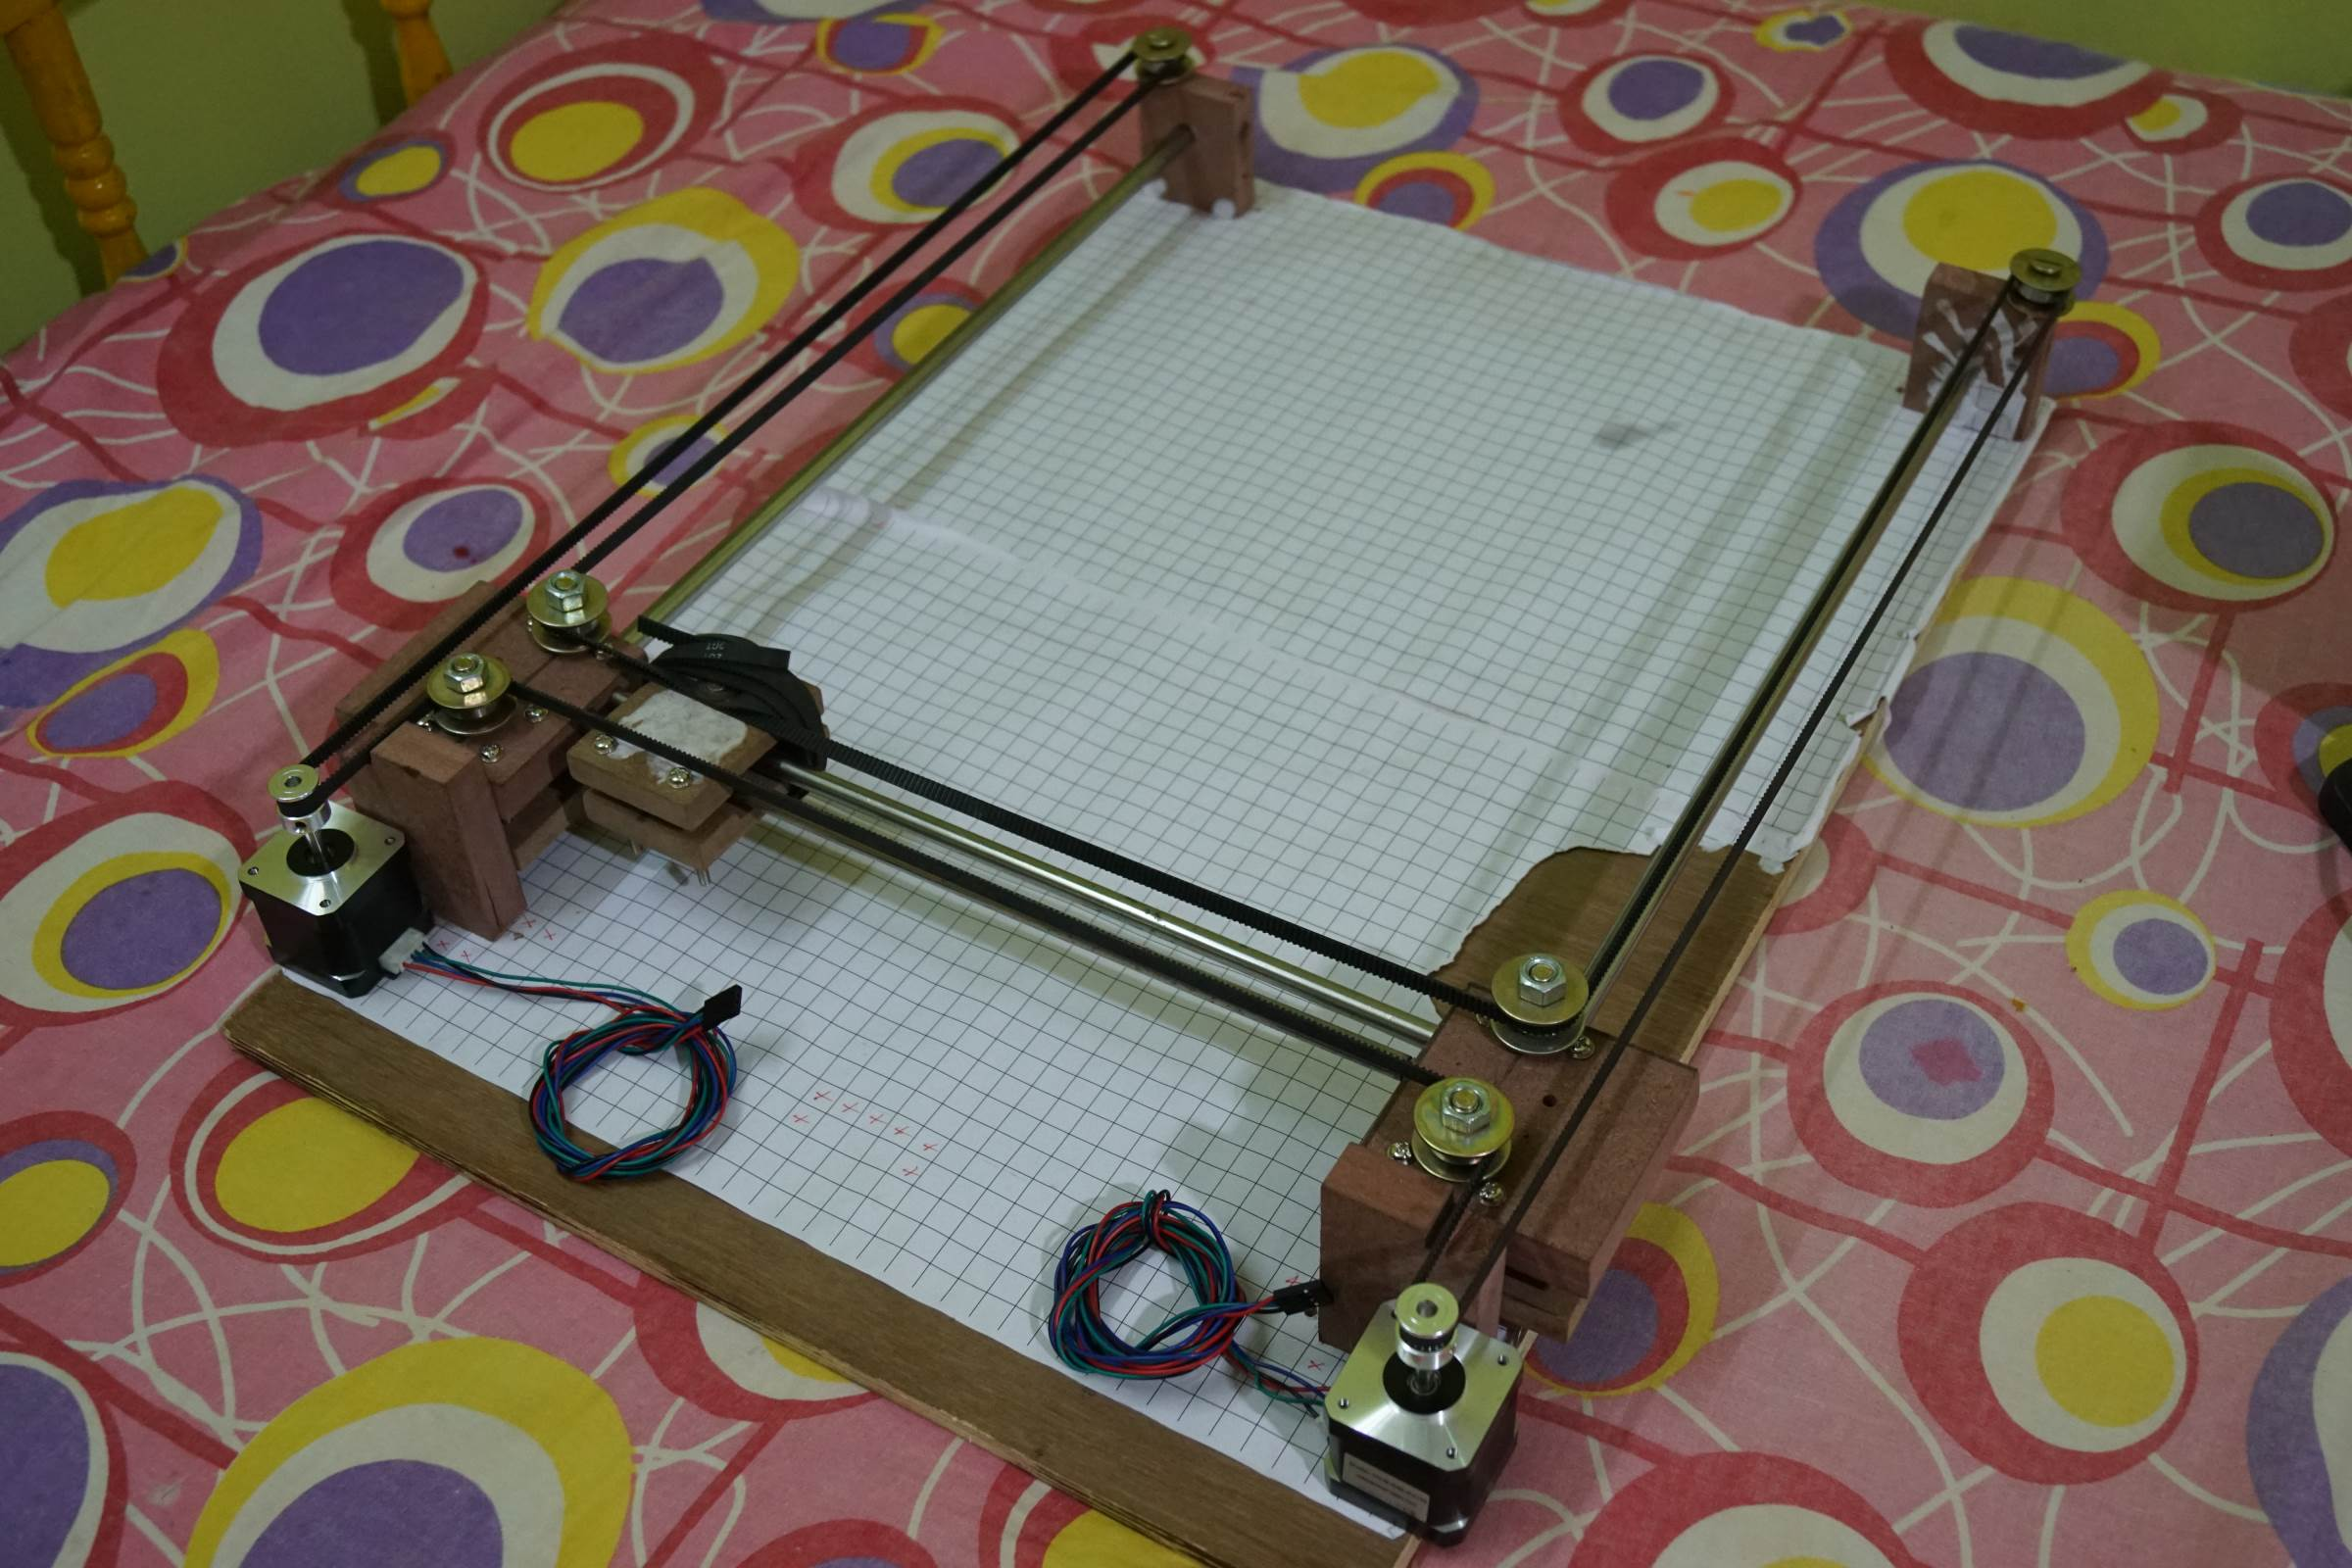 Belt Assembly of Arduino Drawing Robot